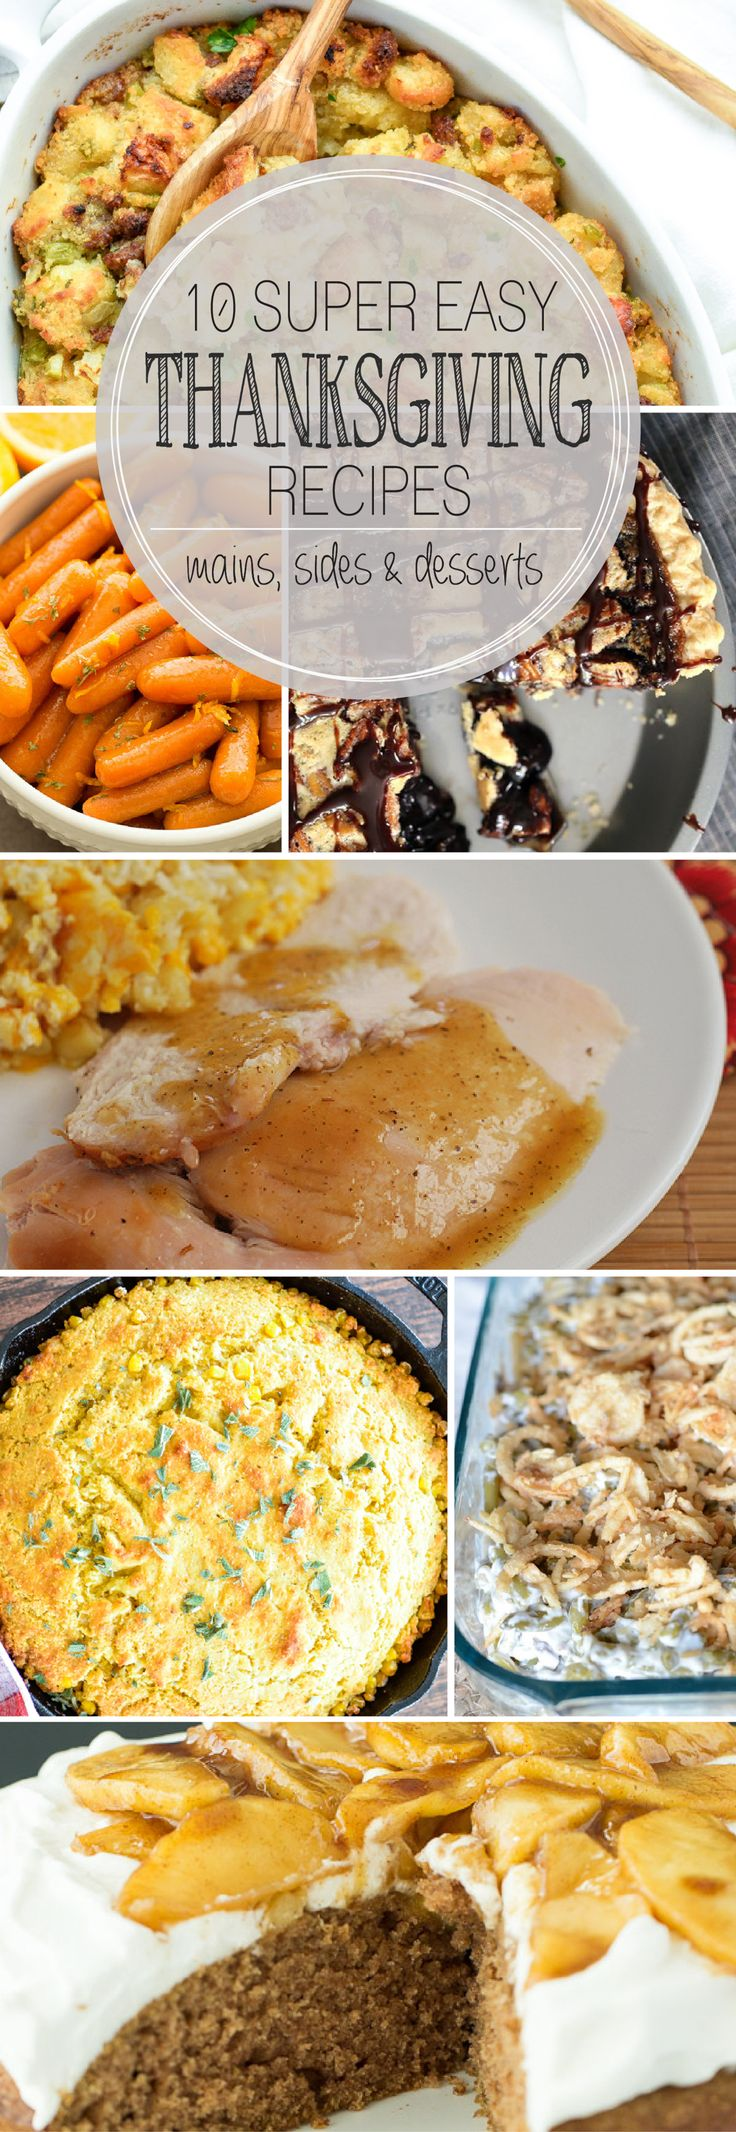 10 Easy Thanksgiving Recipes - sides, sweets, and turkey!